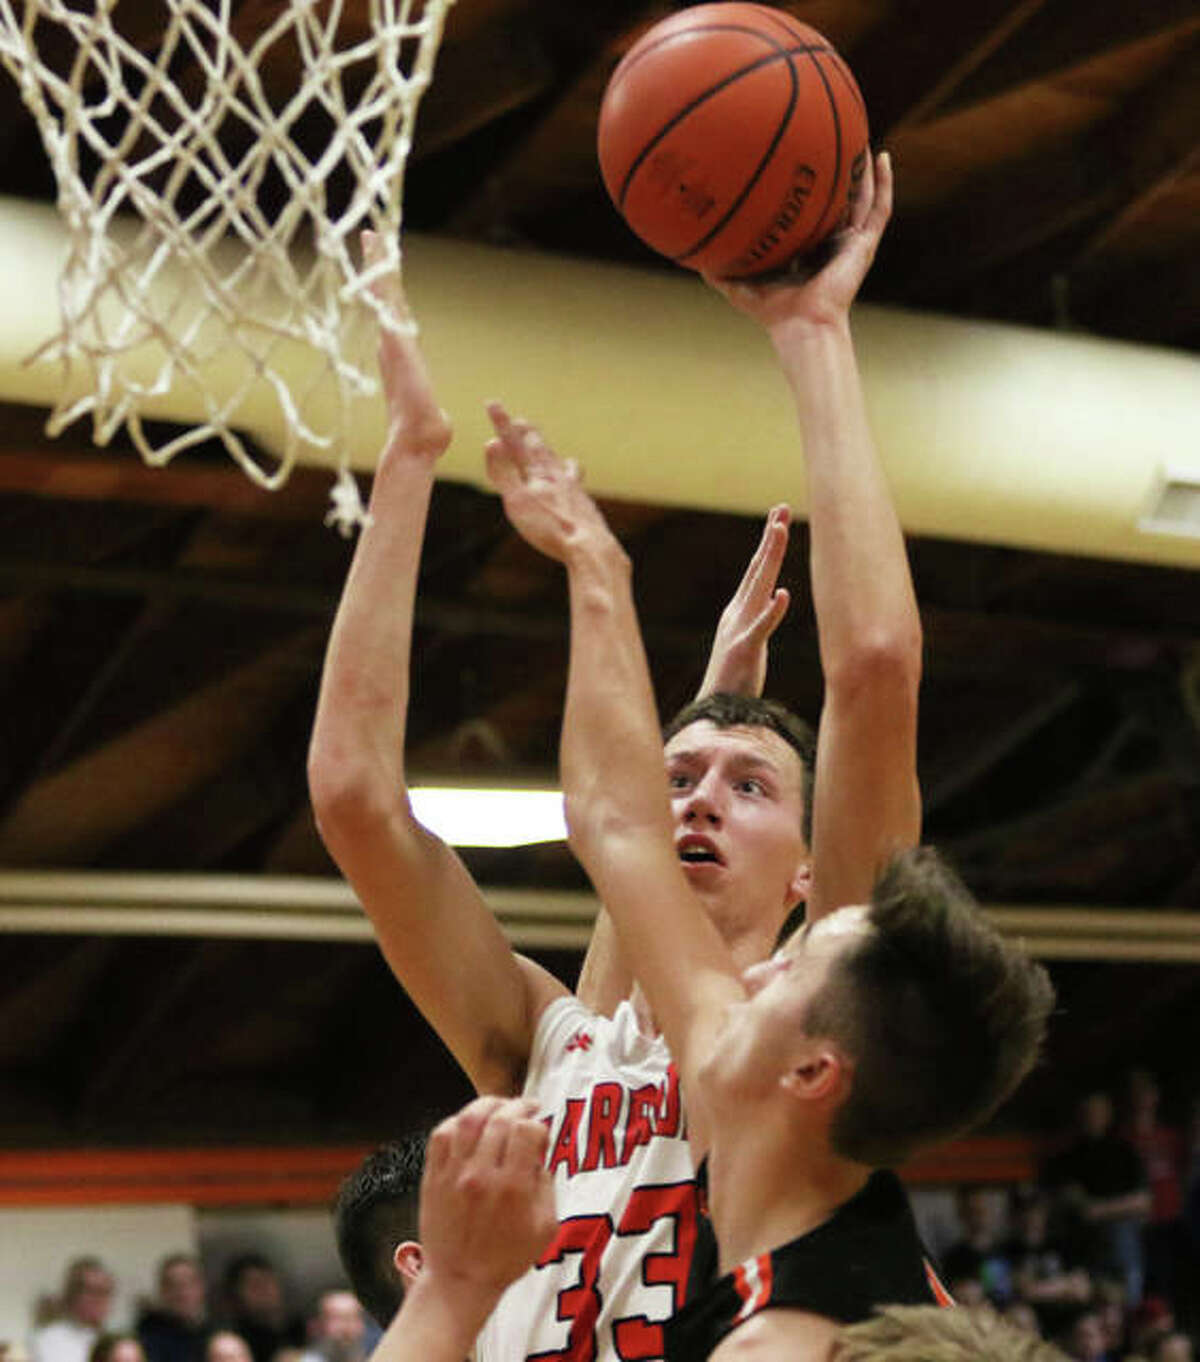 Calhoun's Corey Nelson (33) shoots over a Raymond Lincolnwood defender during Friday's championship game at the Lincolnwood Class 1A Regional in Raymond. On Wednesday night at Dupo, the Warriors' season ended with a loss to Winchester West Central.